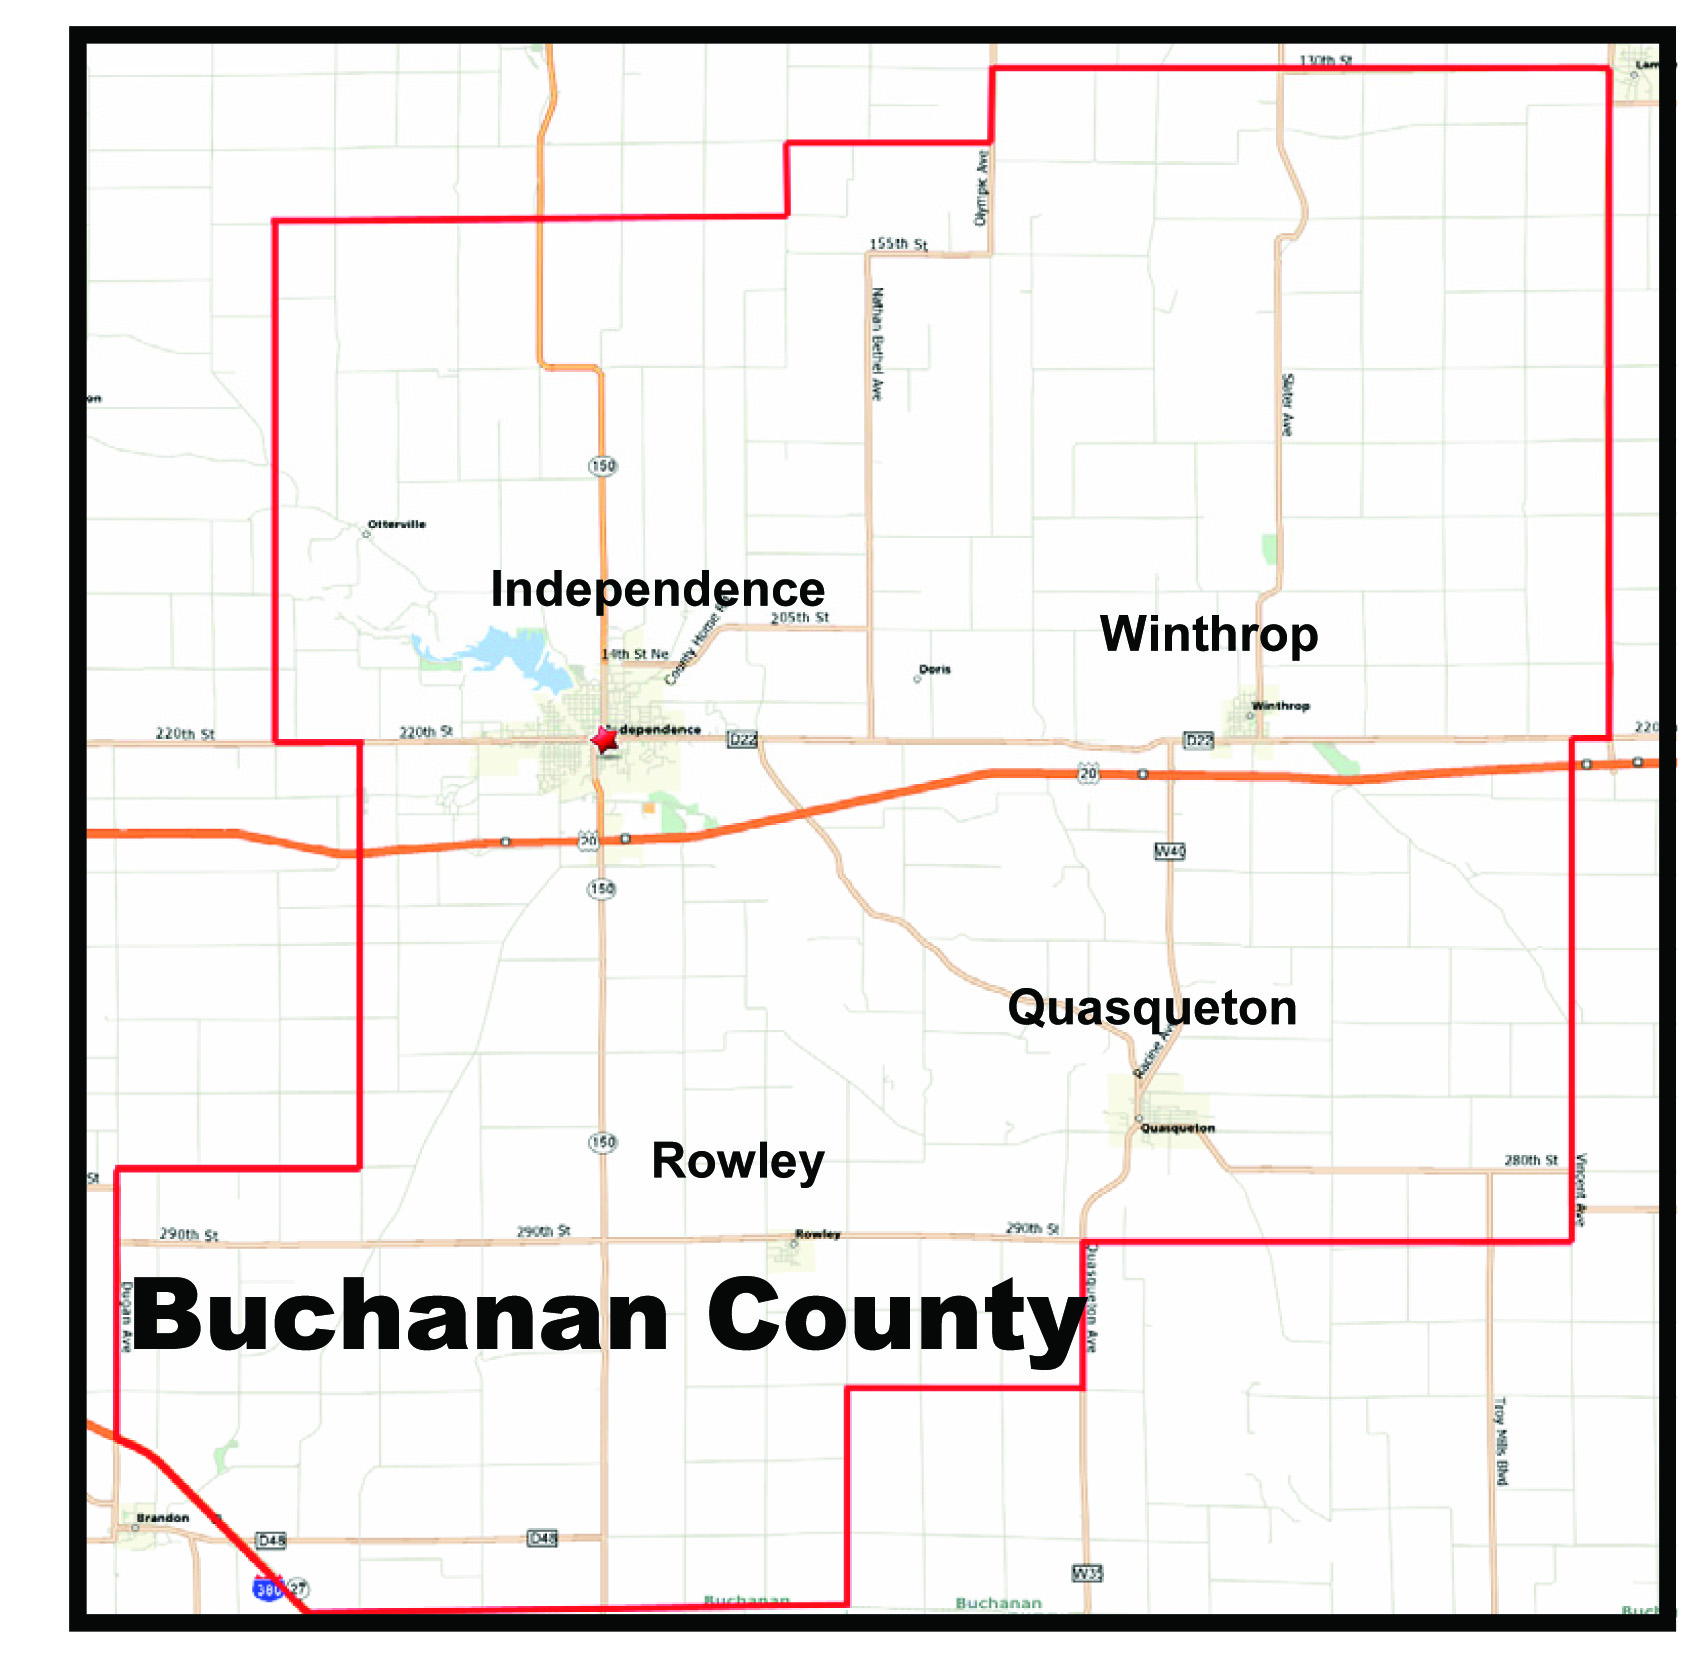 buchanan county Individuals needing to obtain or renew their private pesticide applicator certification for the purchase of restricted use pesticides may come into the buchanan county extension office and watch a two-hour training video the training is free of charge with the exception of purchasing the private.